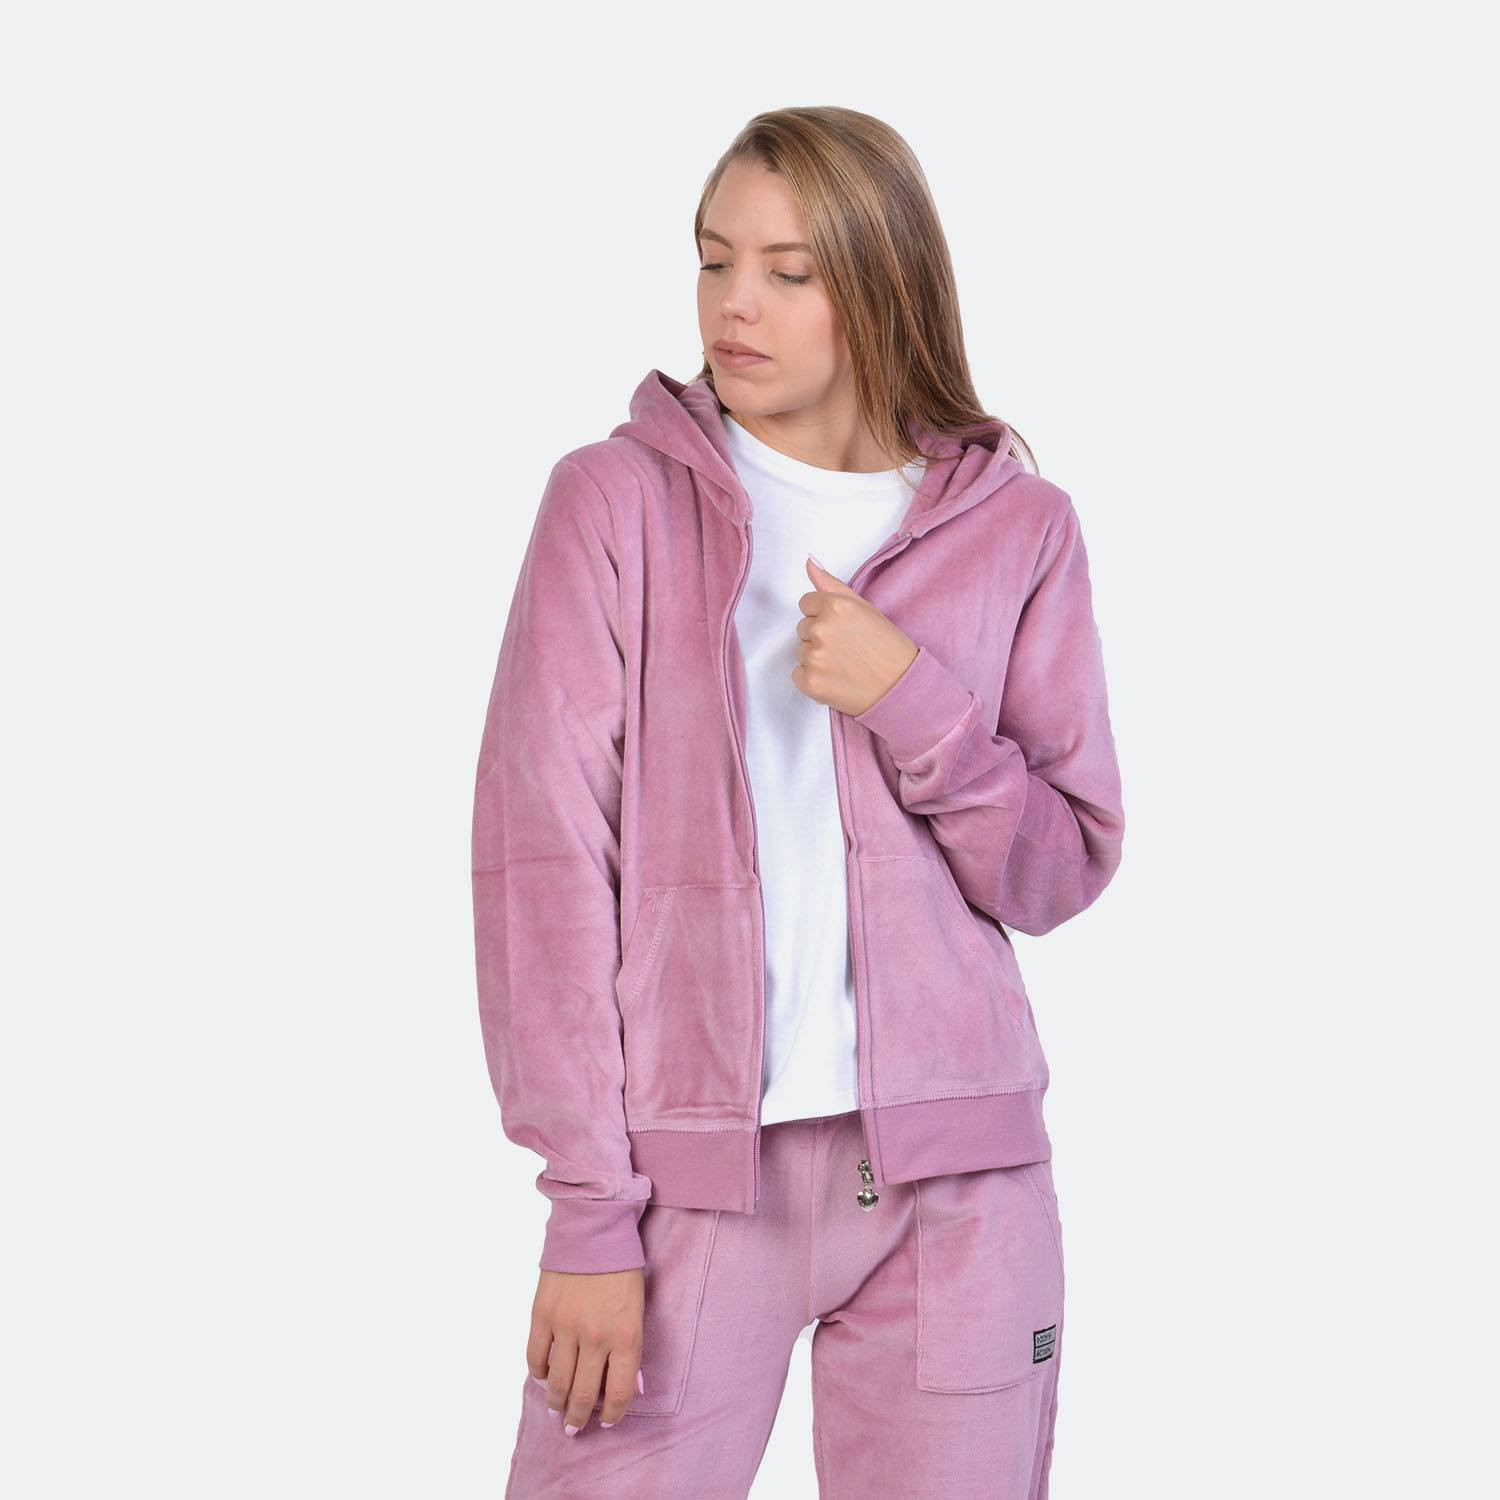 Body Action Velour Hoodie Jacket - Γυναικεία Ζακέτα (9000041213_1893)